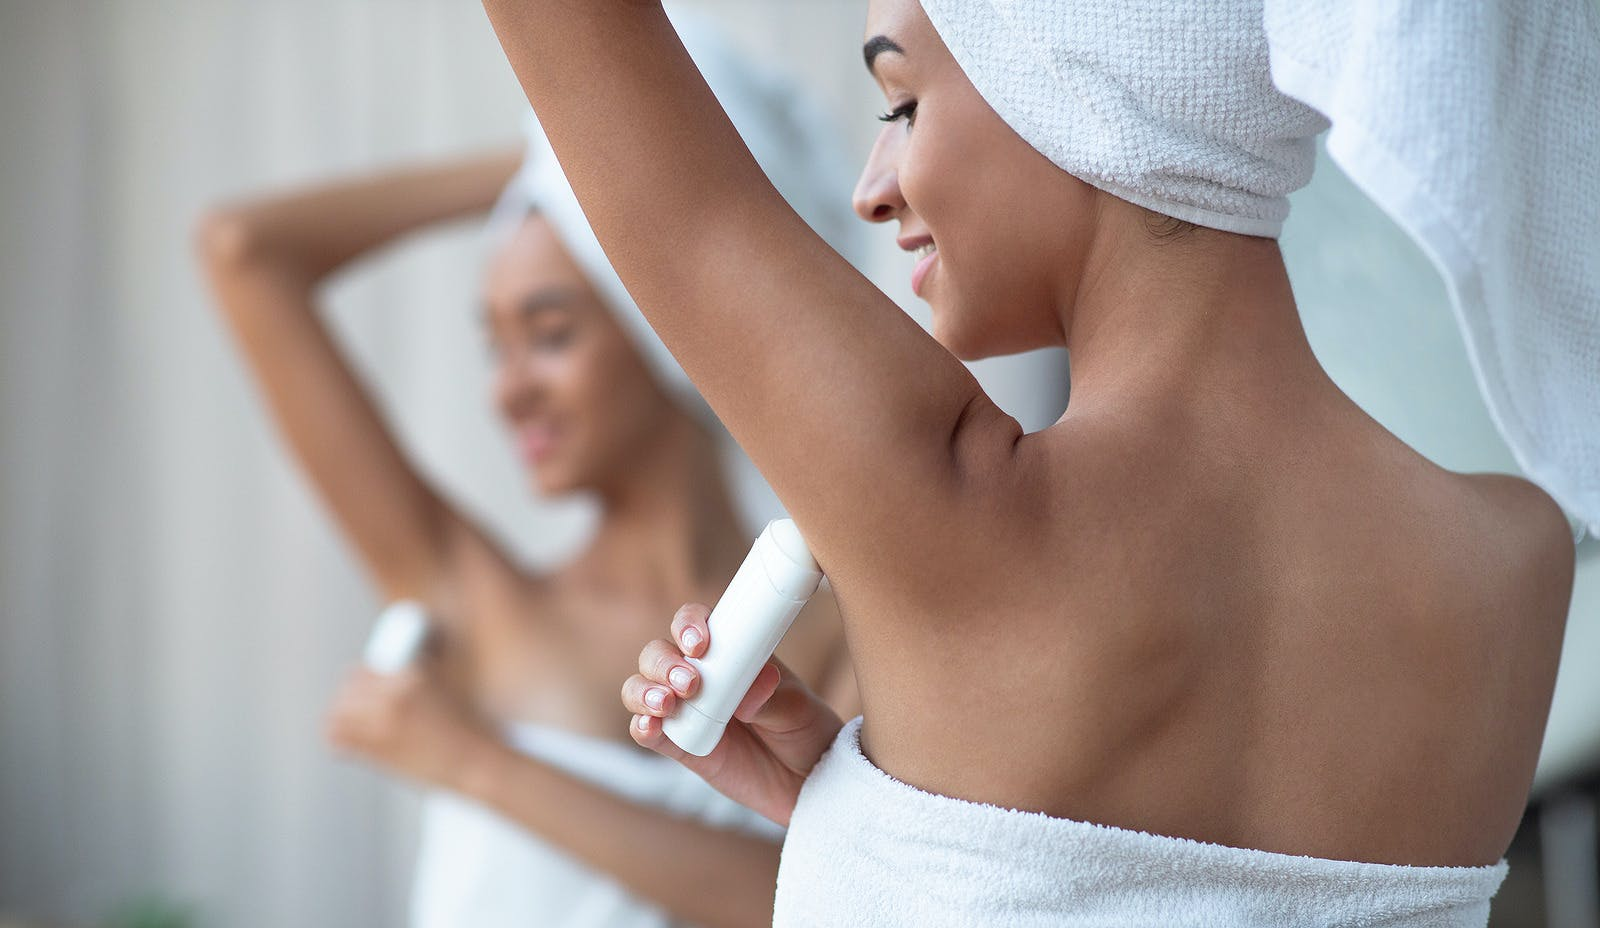 Deodorant for dry skin and purity concept. Smiling african american woman in white towel applying deodorant on armpit after shower stands in bathroom in reflection of mirror, panorama, free space